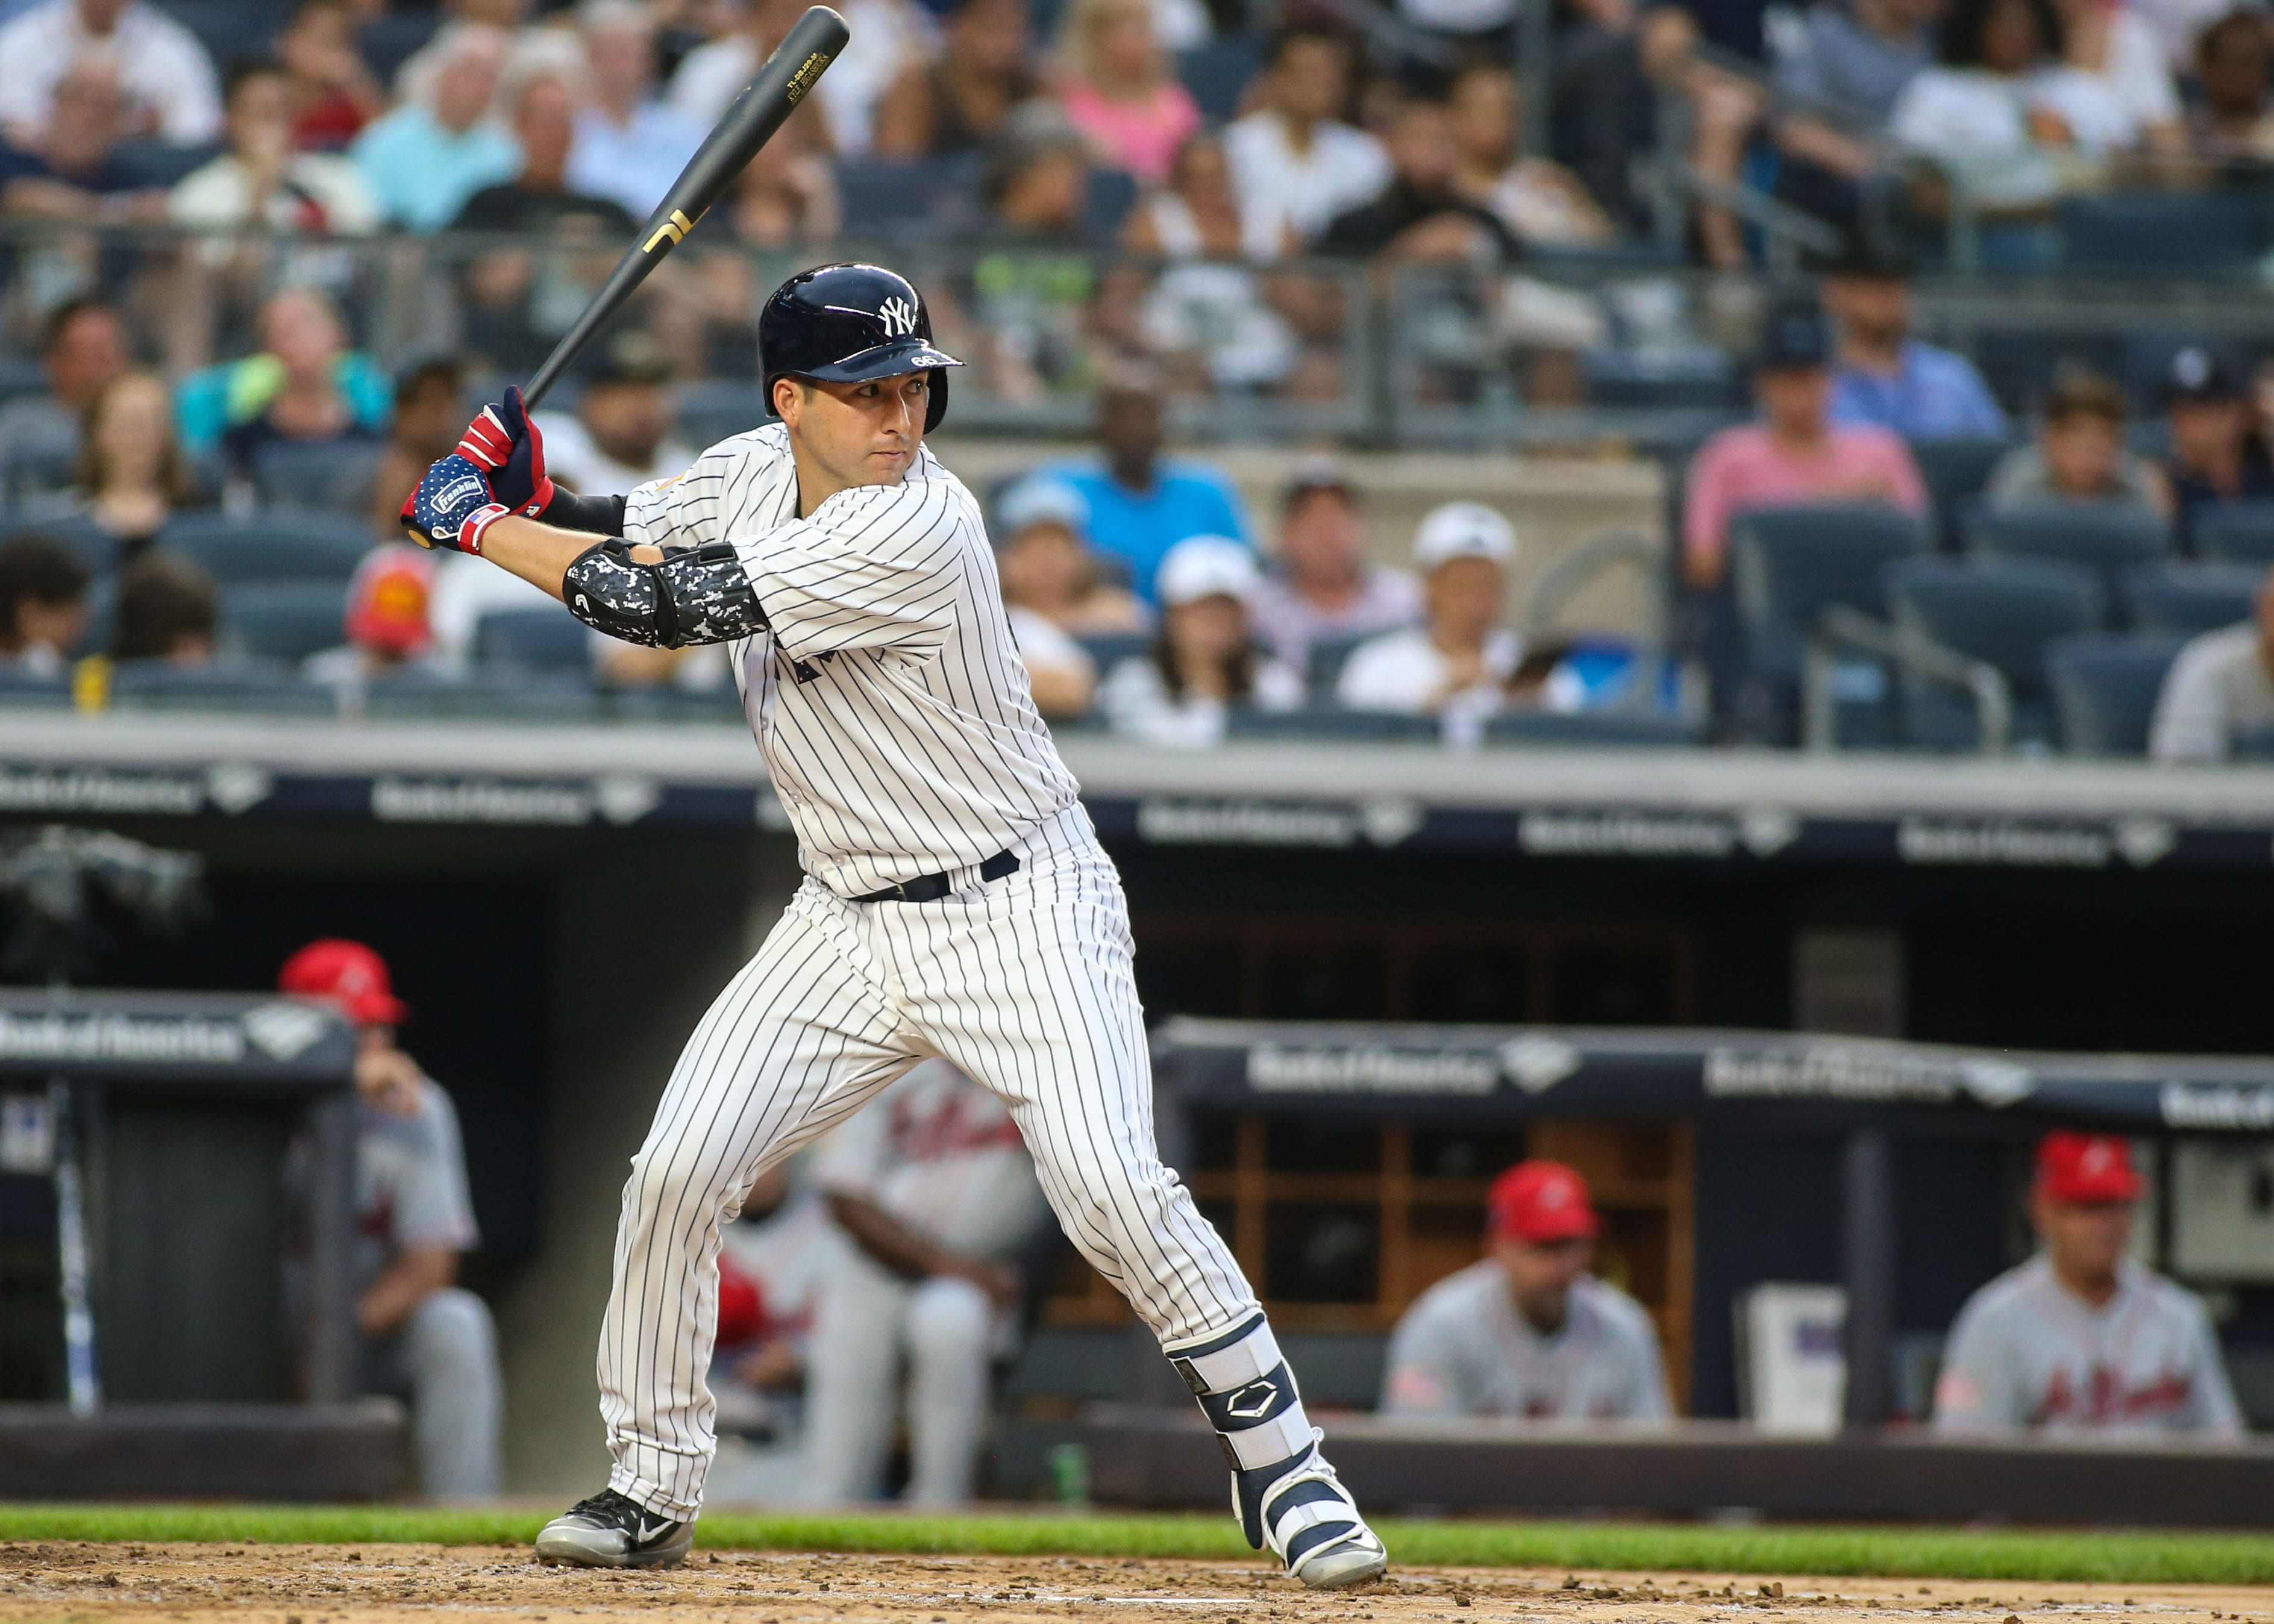 New York Yankees, Kyle Higashioka